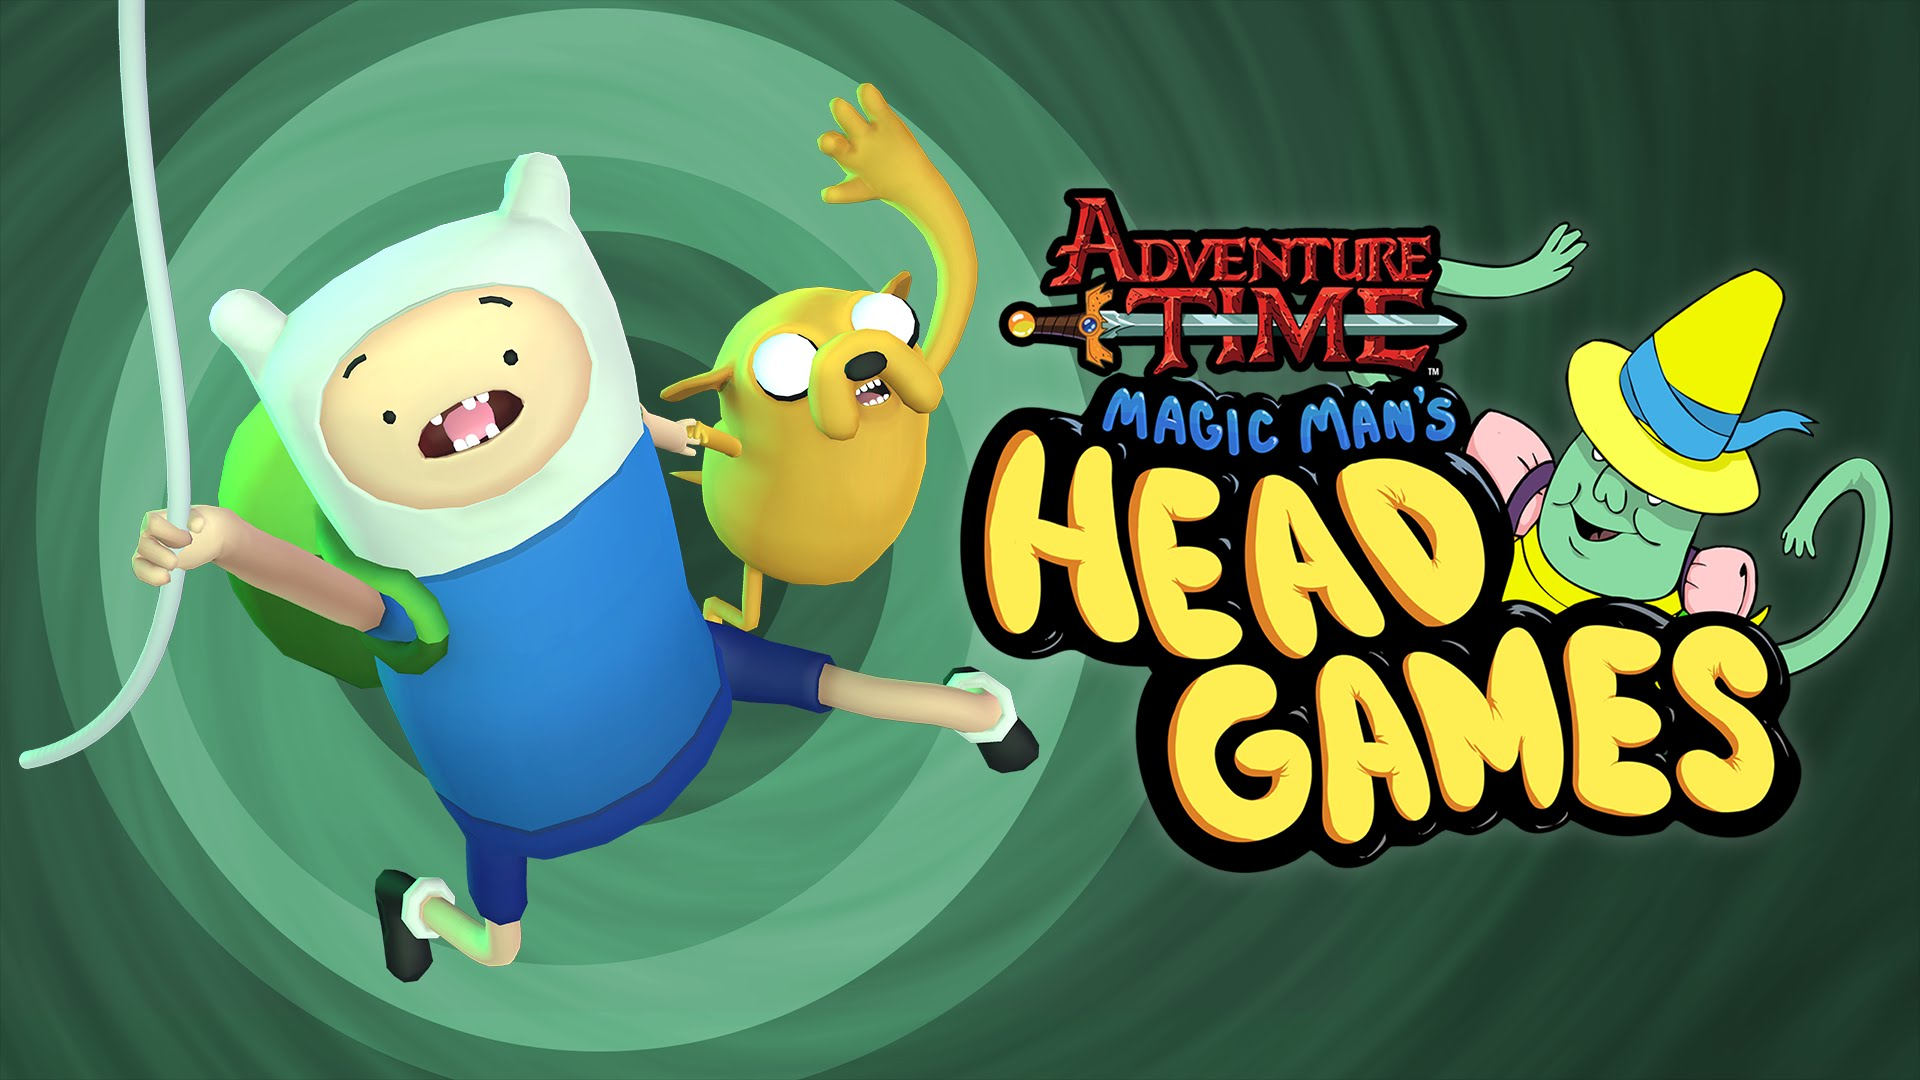 adventure time dating game Artist mike gaboury dreamed a beautiful dream of an adventure time video game, and decided to share just a piece of that dream with us working in his spare time, and for no reward other than his love for the show, gaboury animated the intro and start screen to an imaginary side-scrolling retro-style.